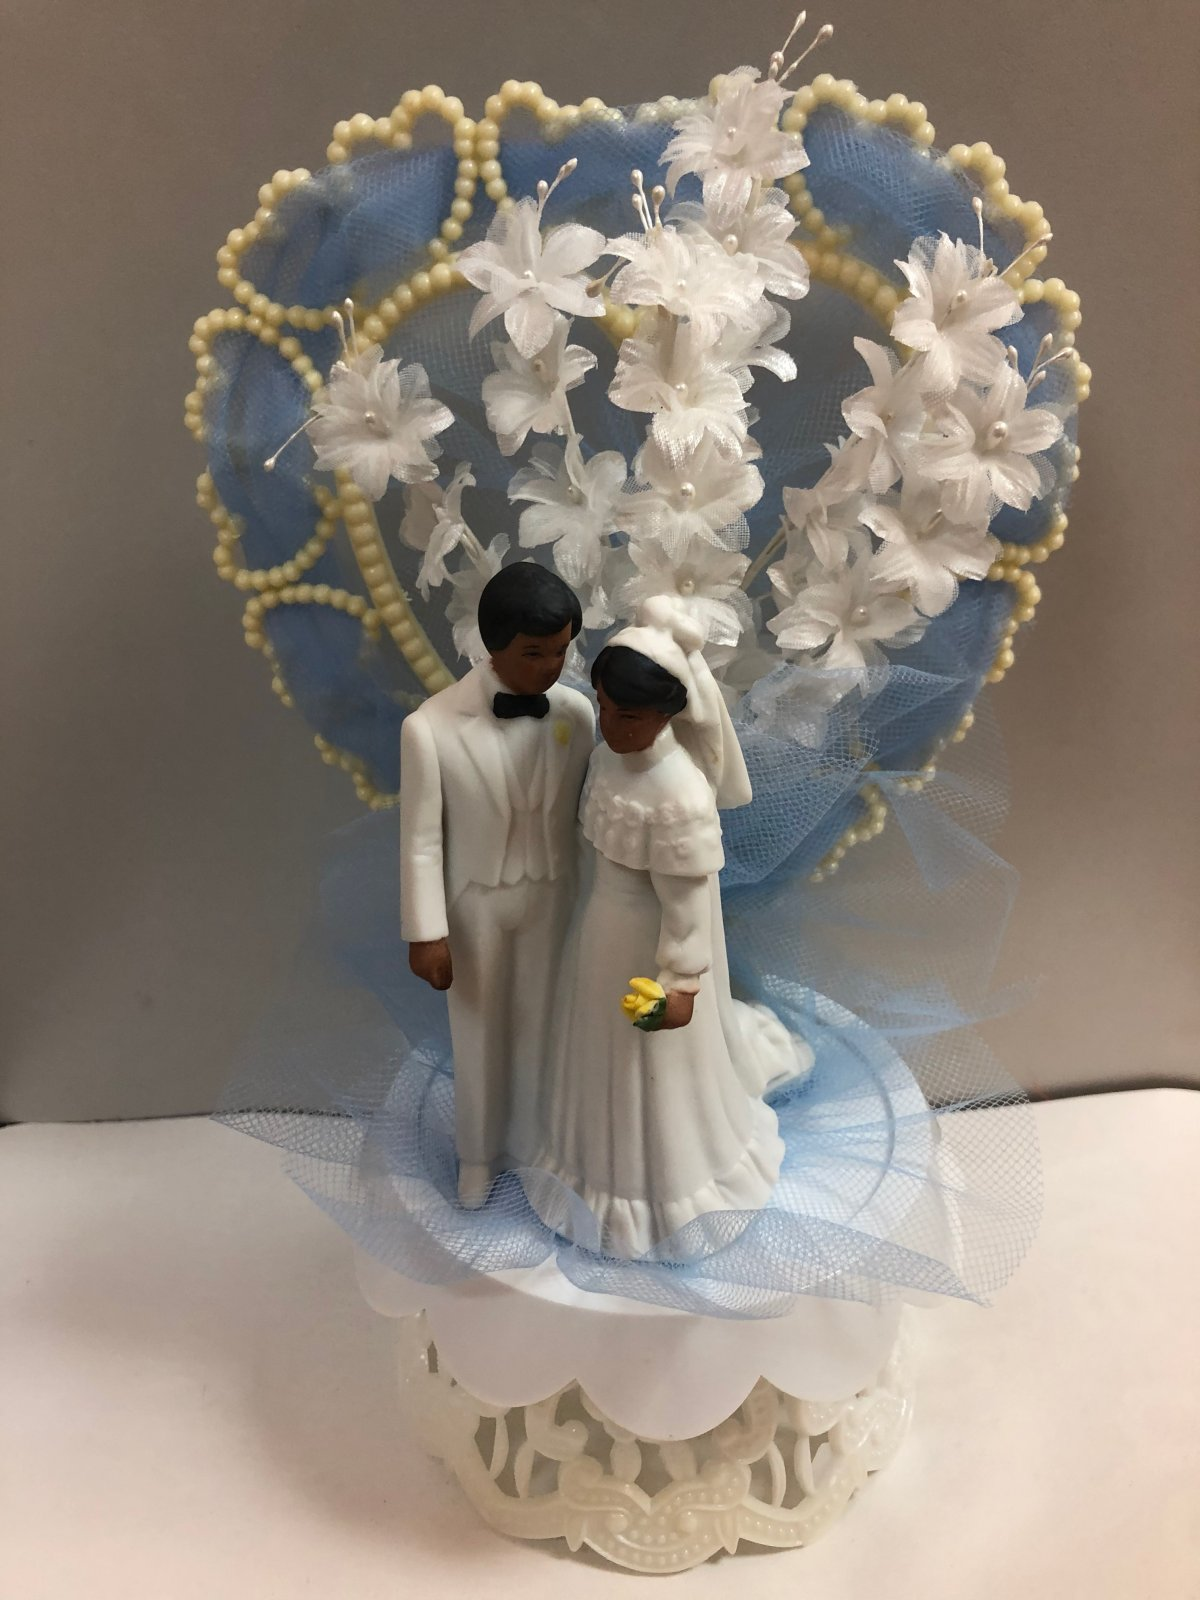 Ethnic Bride & Groom Wedding Cake Topper  with Blue Accents